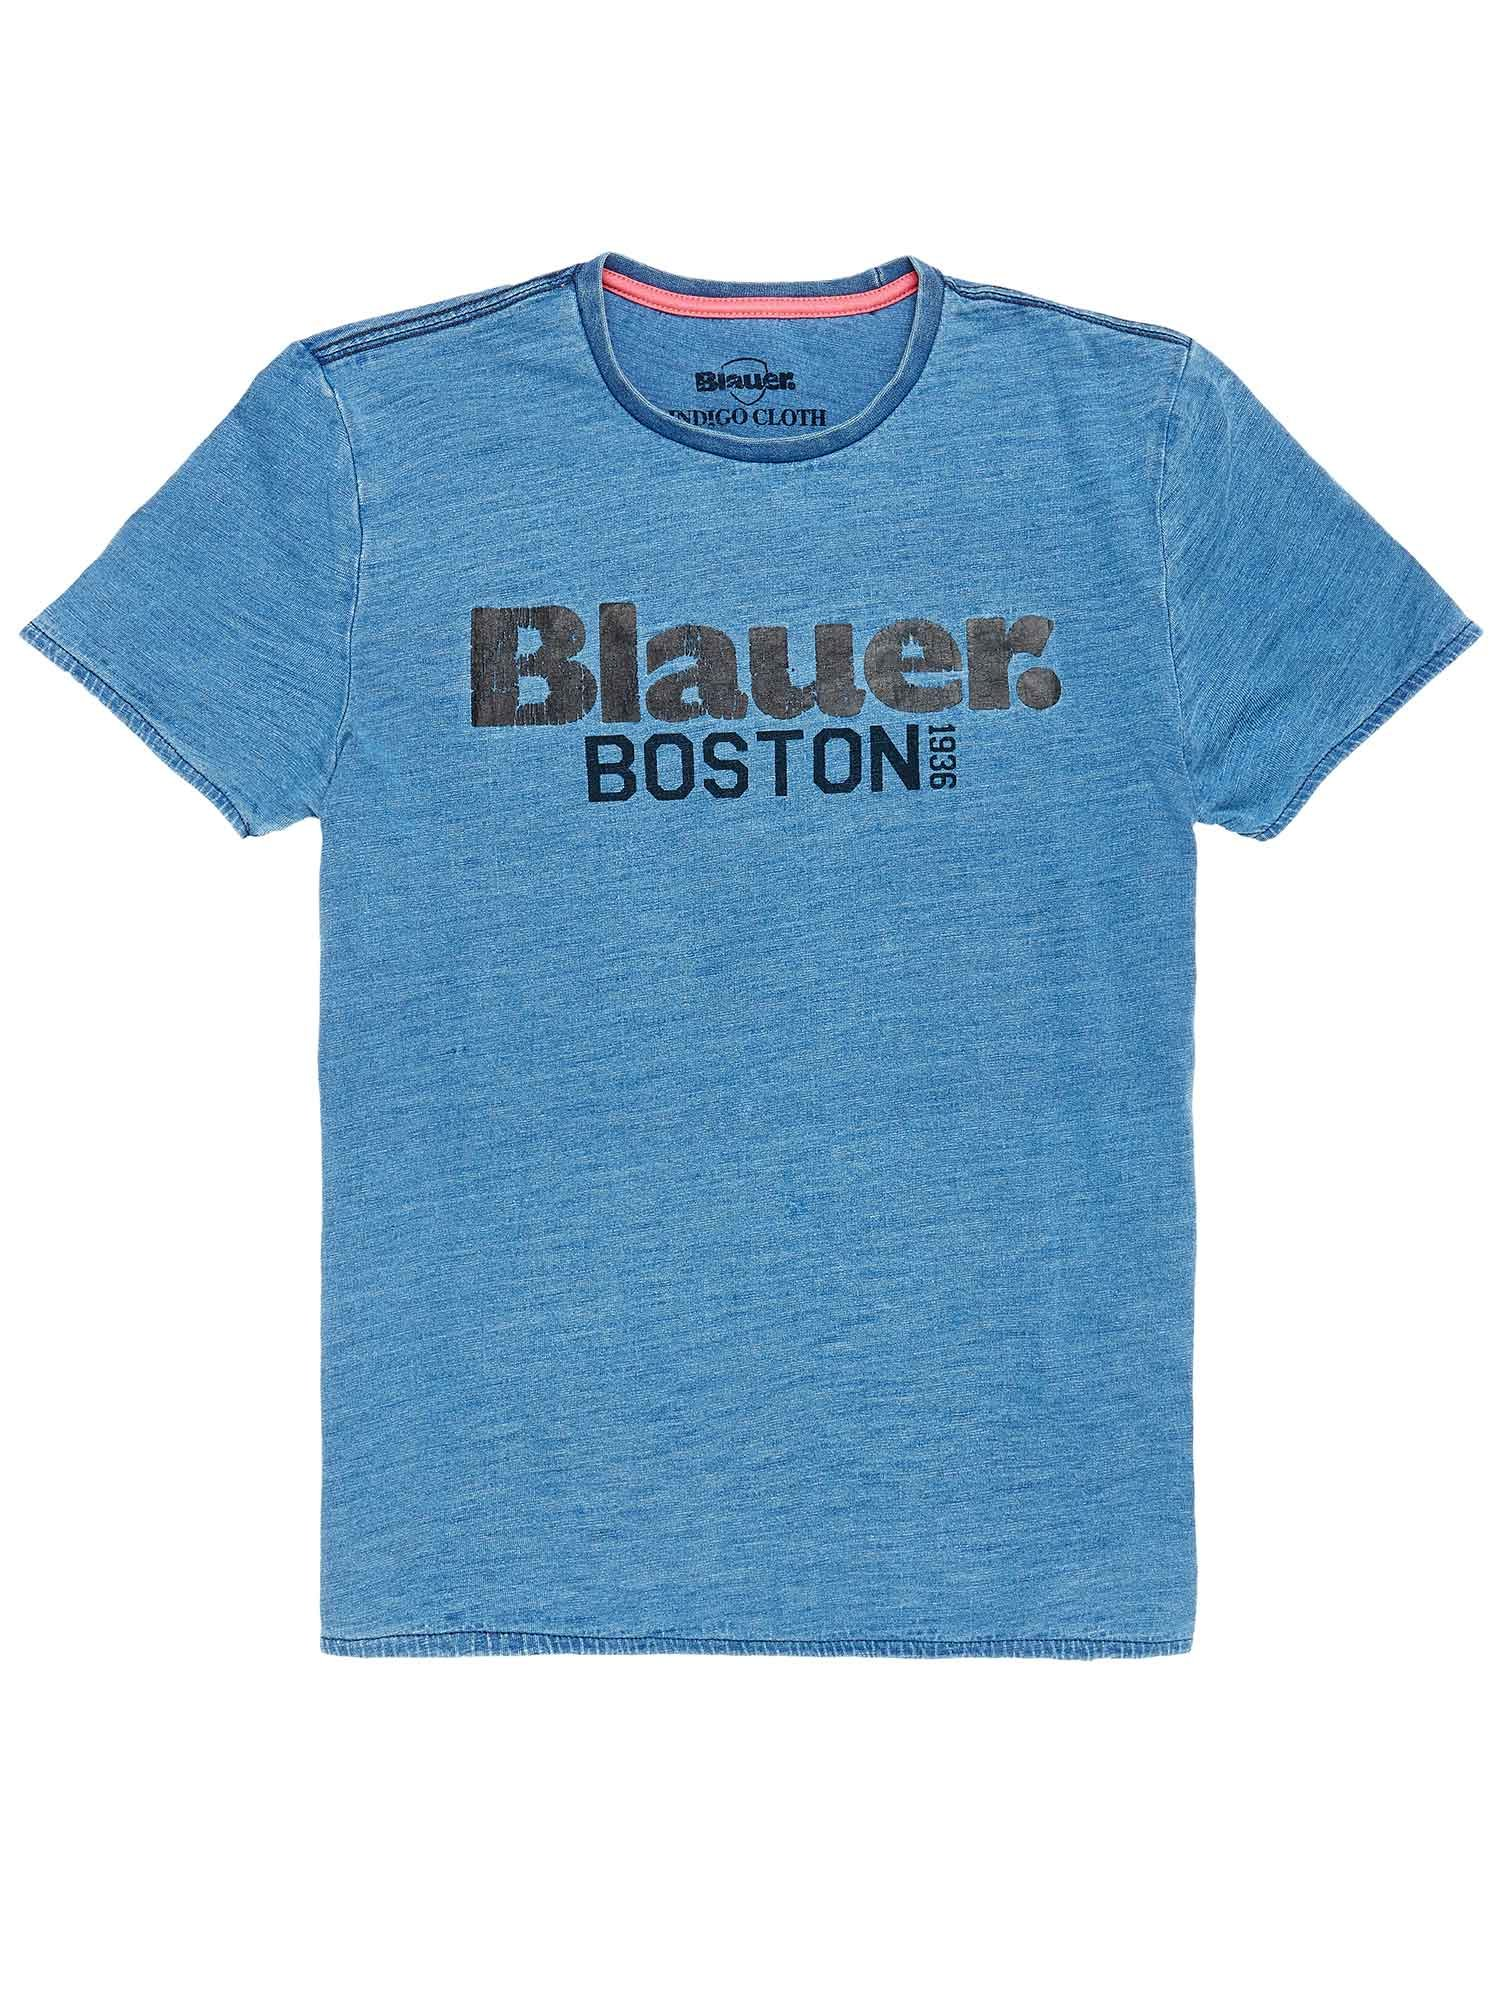 JERSEY T-SHIRT BLAUER BOSTON 1936 - Blauer